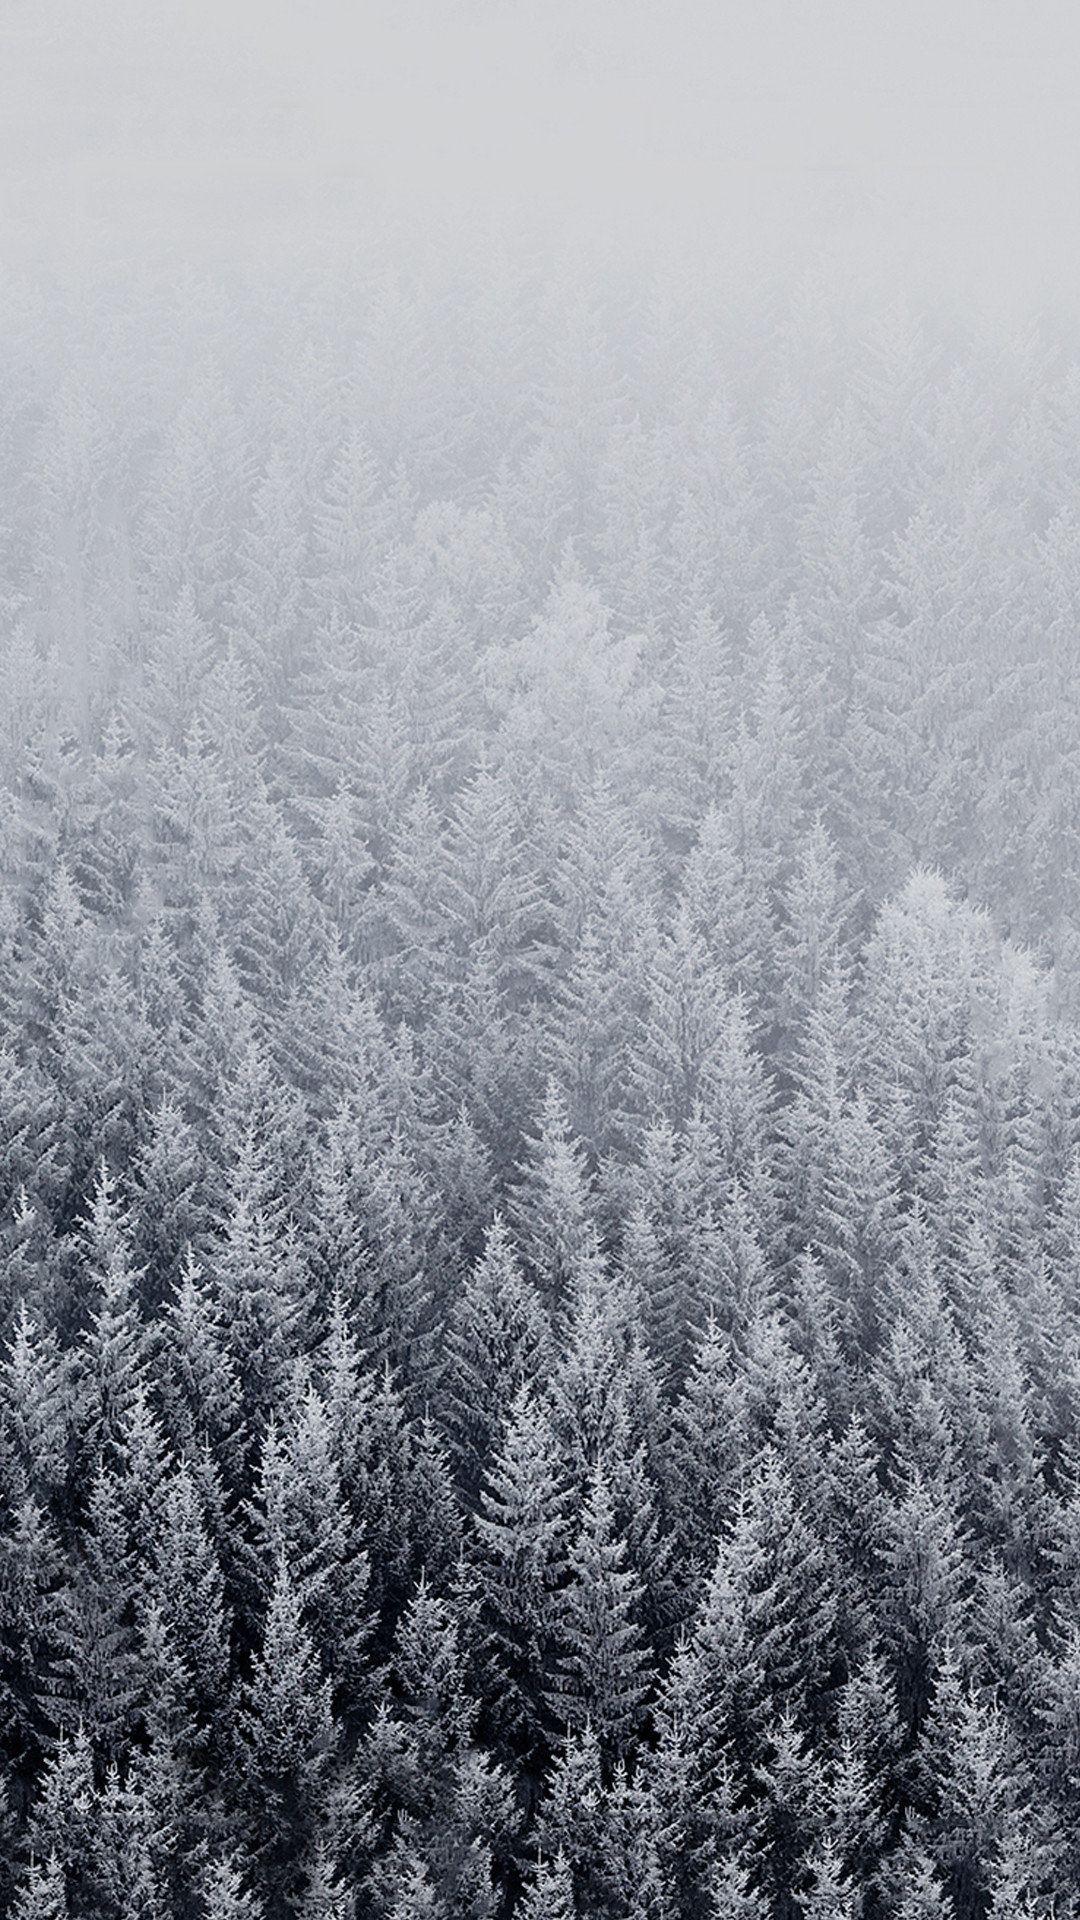 File attachment for Apple iPhone 6 Plus Wallpaper – winter with snowy trees